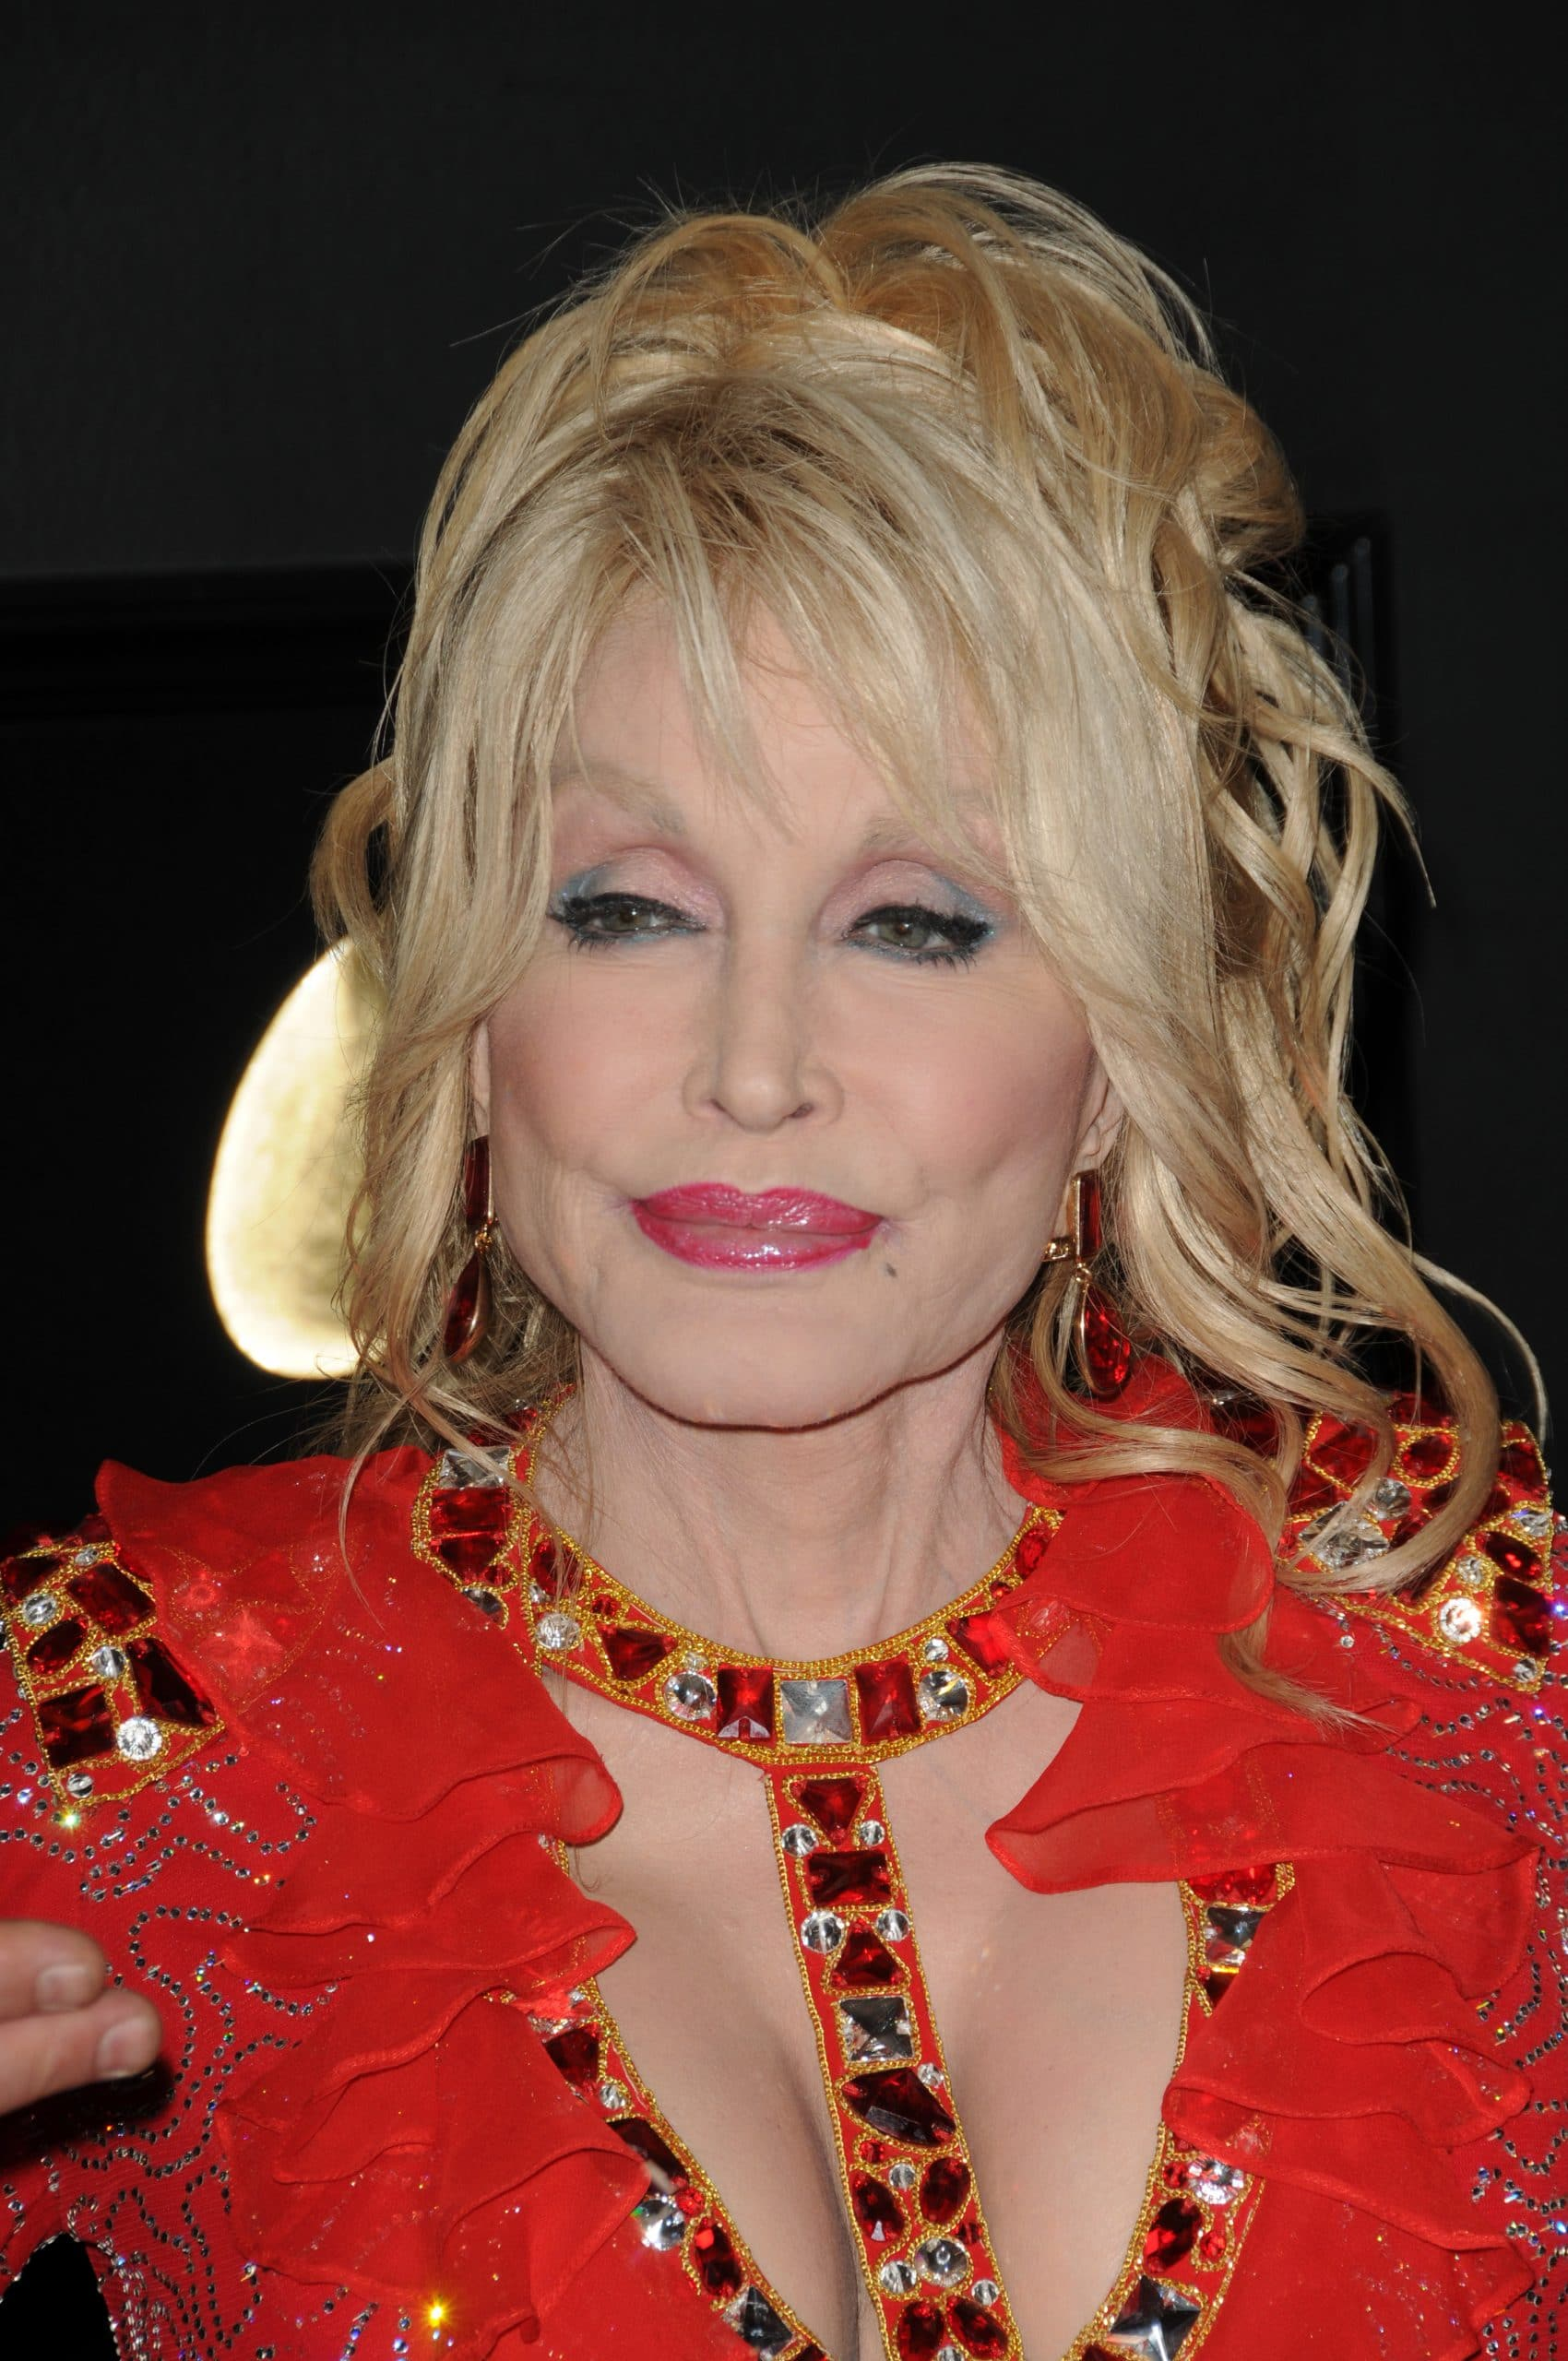 Dolly Parton Believes You Should Treat Marriage Like A Business